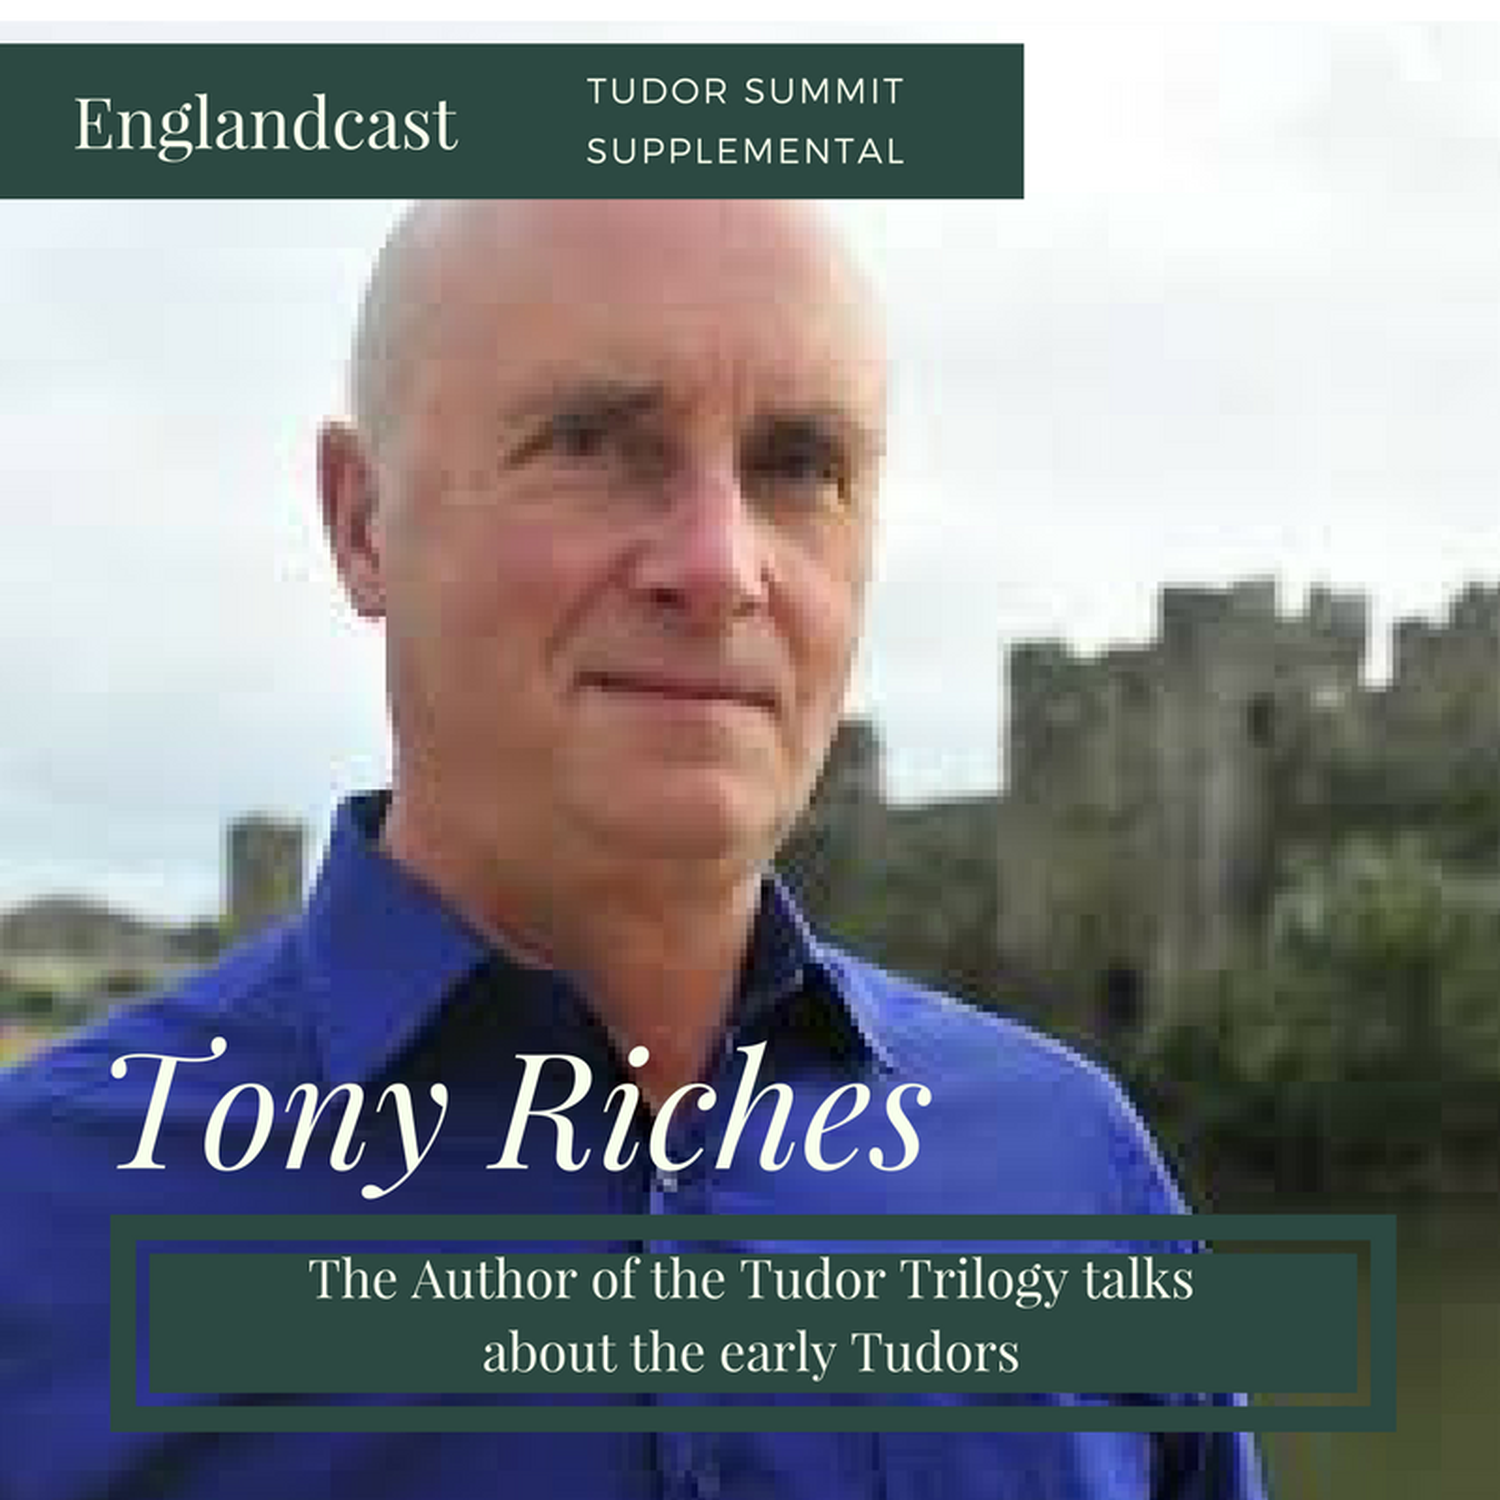 Supplementary: Tony Riches at the Tudor Summit